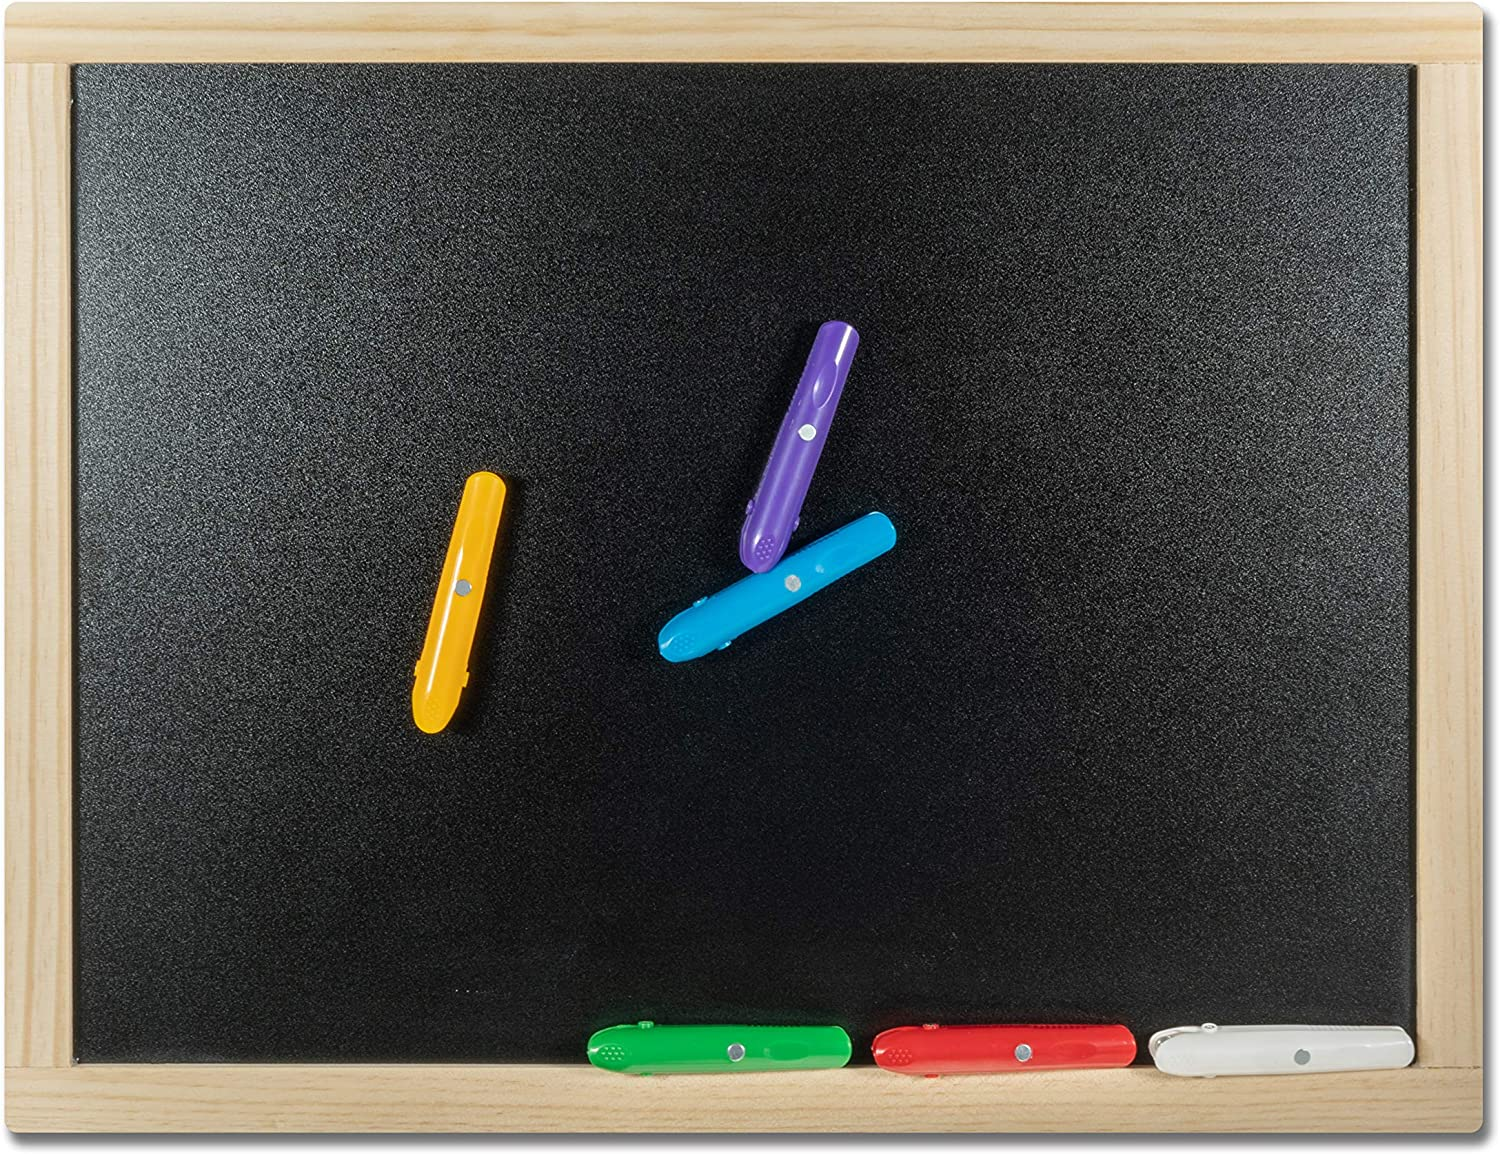 Includes Fun Magnetic Chalk Holder w//Kid-Friendly Grip WEIMY 12-Count White Dustless Chalks Non-Toxic Easy to Clean Truly Dust Free Chalk for Art Decorating Whiteboard Blackboard